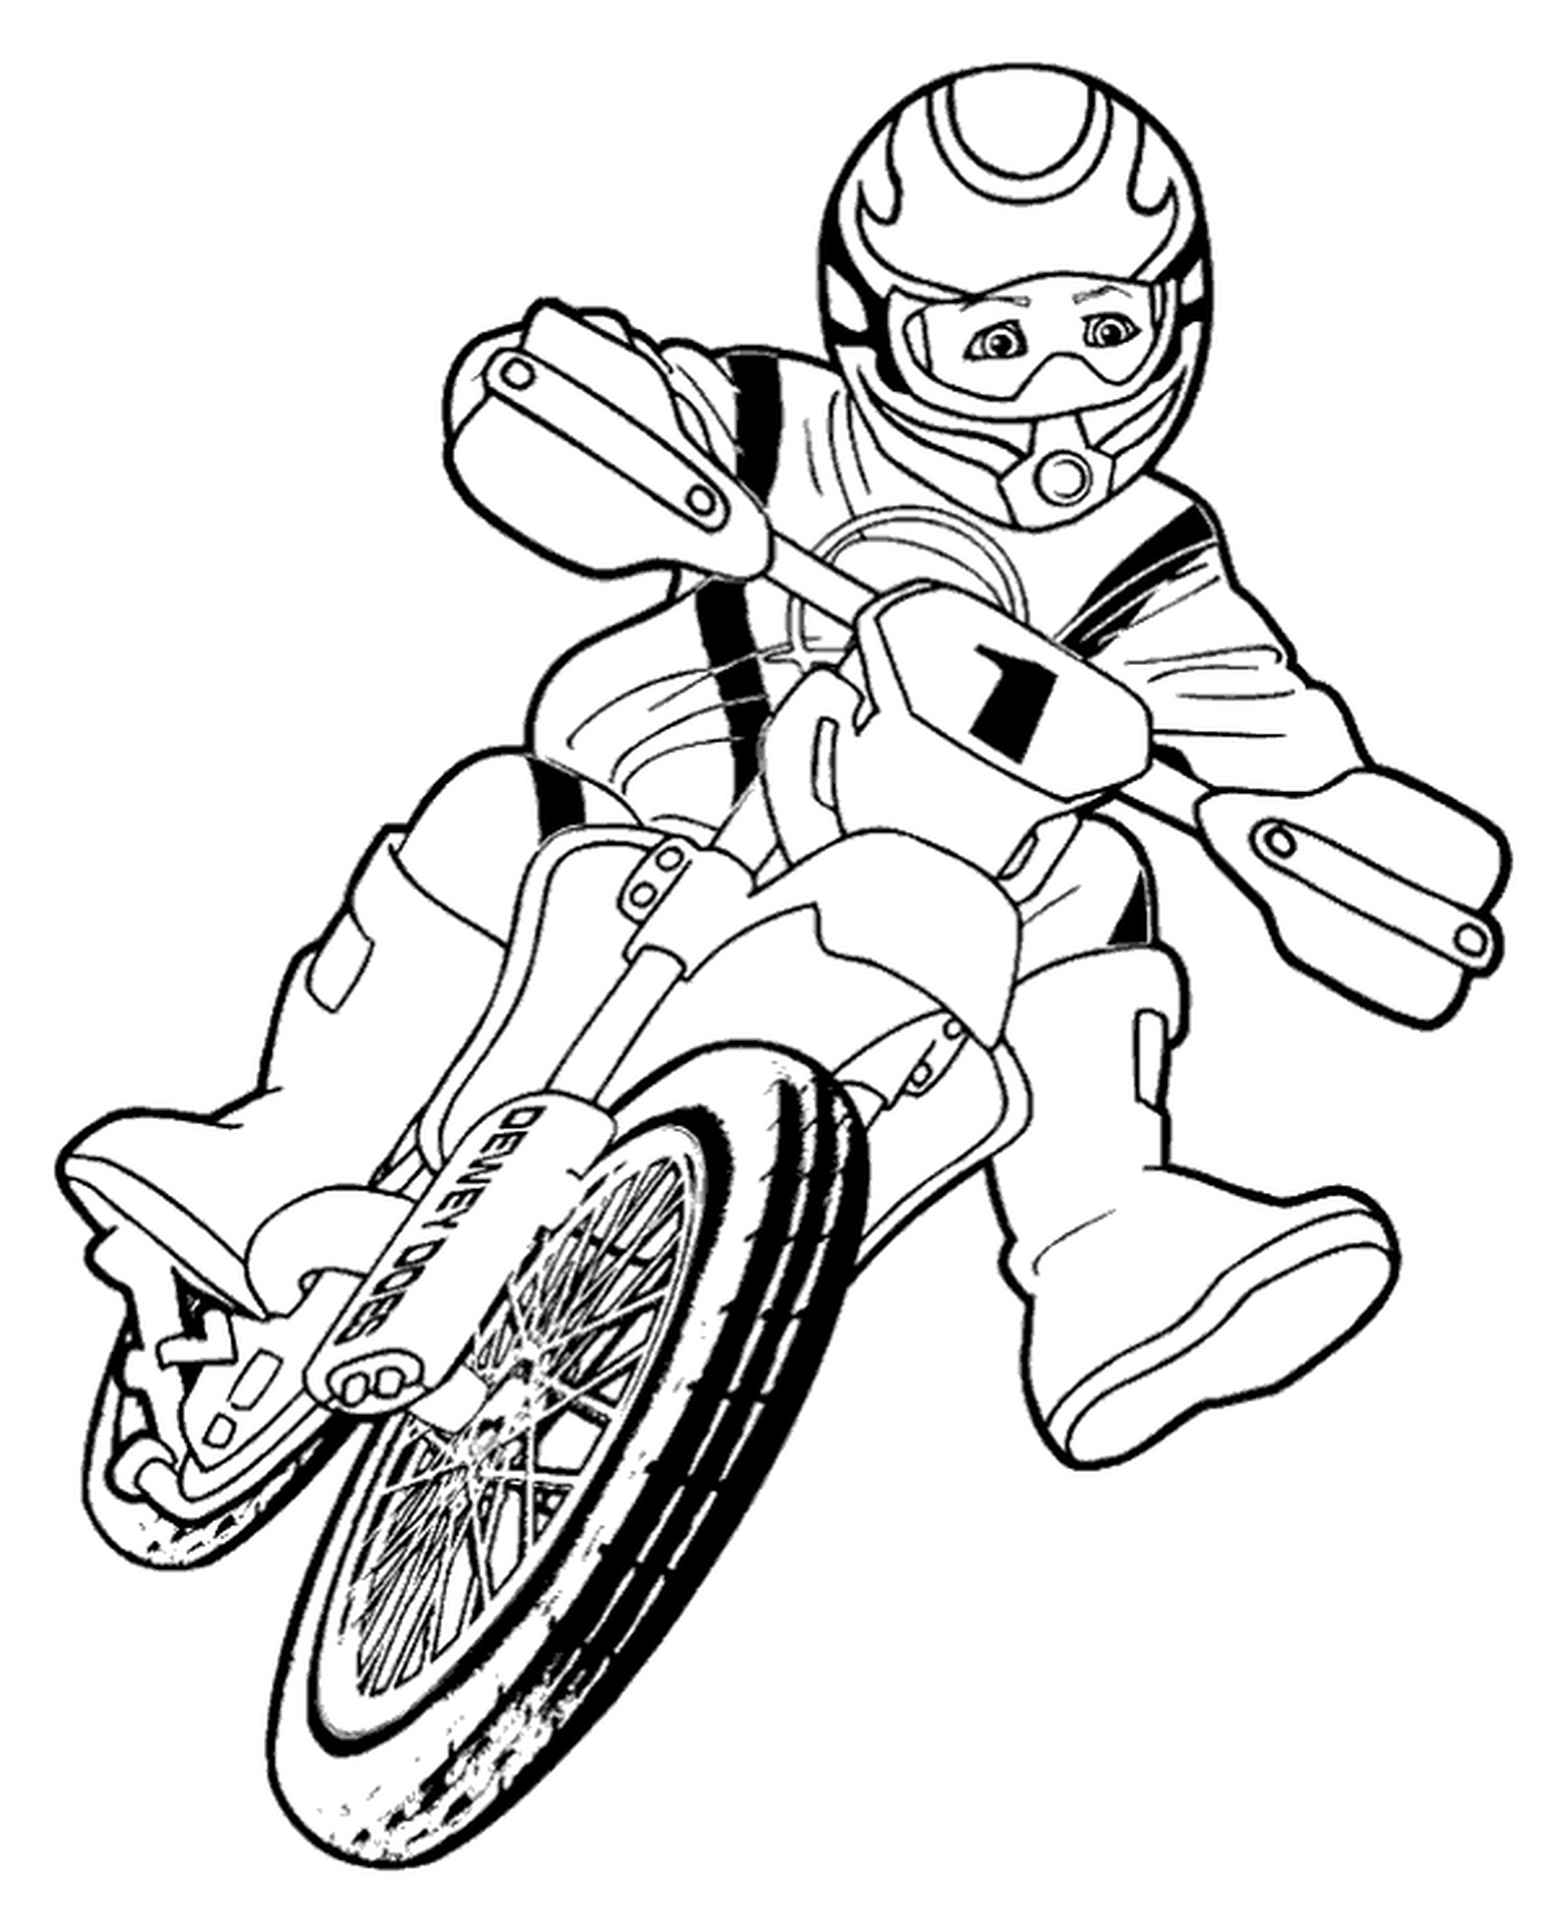 Boy Riding A Motorbike Coloring Page